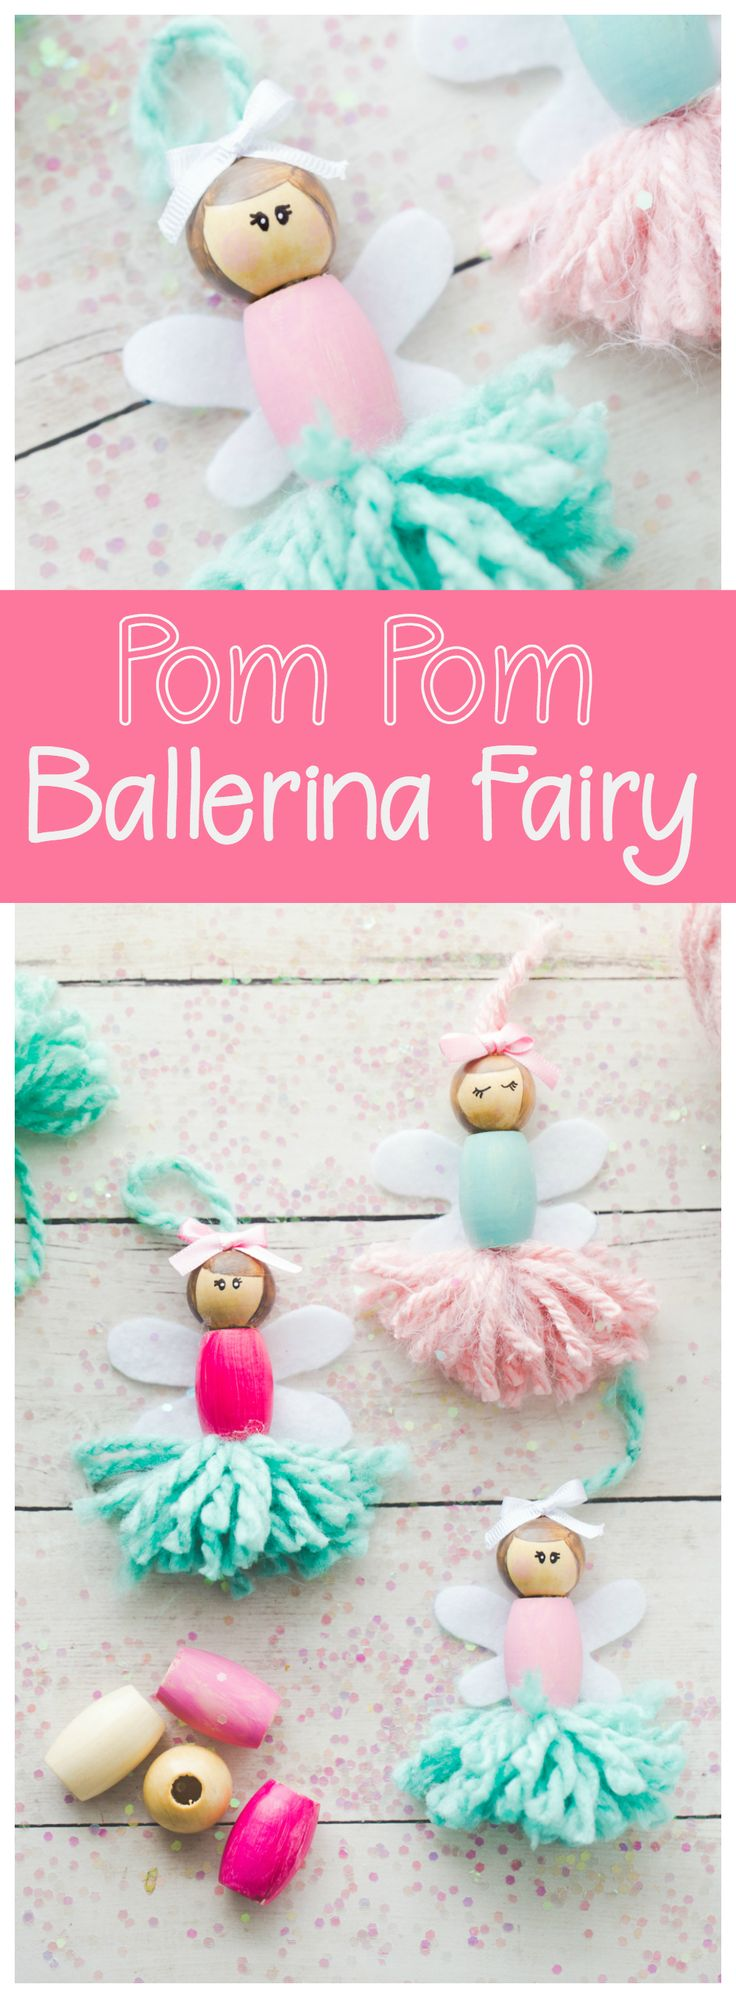 crafts ideas for toddlers 25 unique ballerina ideas on 4146